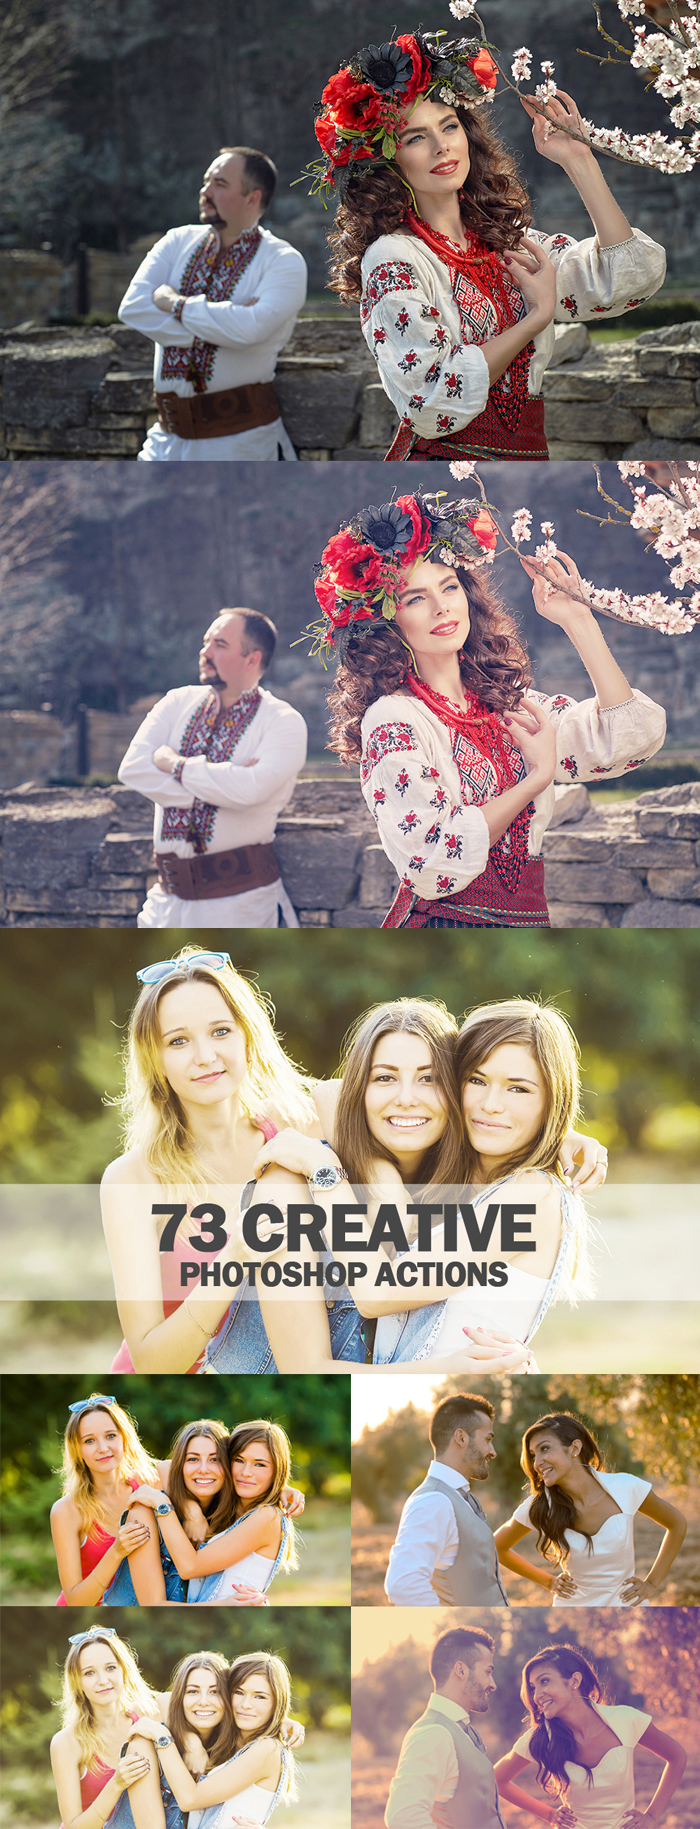 1850 Photoshop Actions example image 17